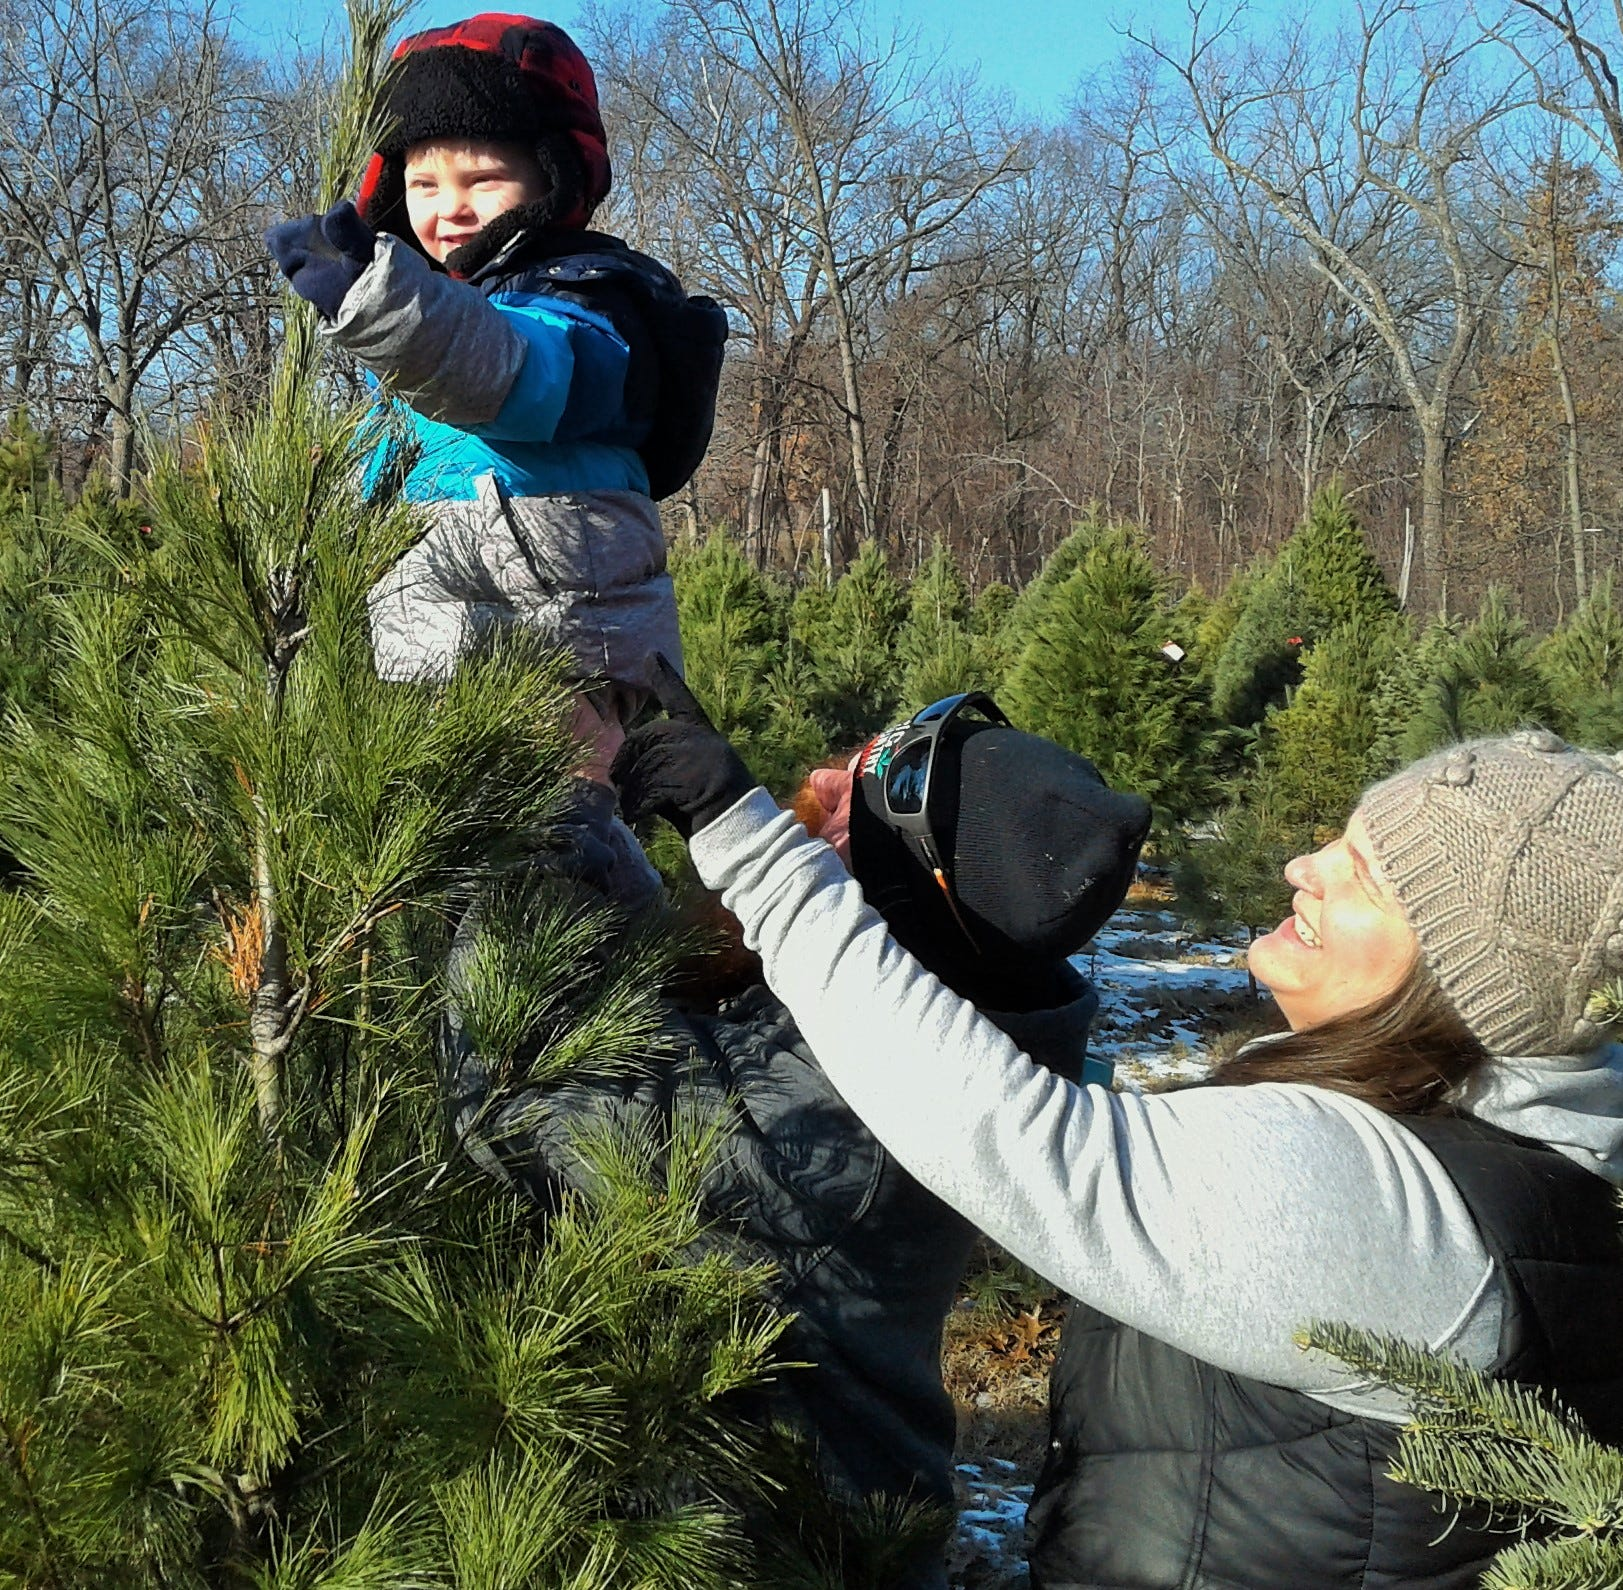 Local Christmas tree farms sell out early to 'those who cut'